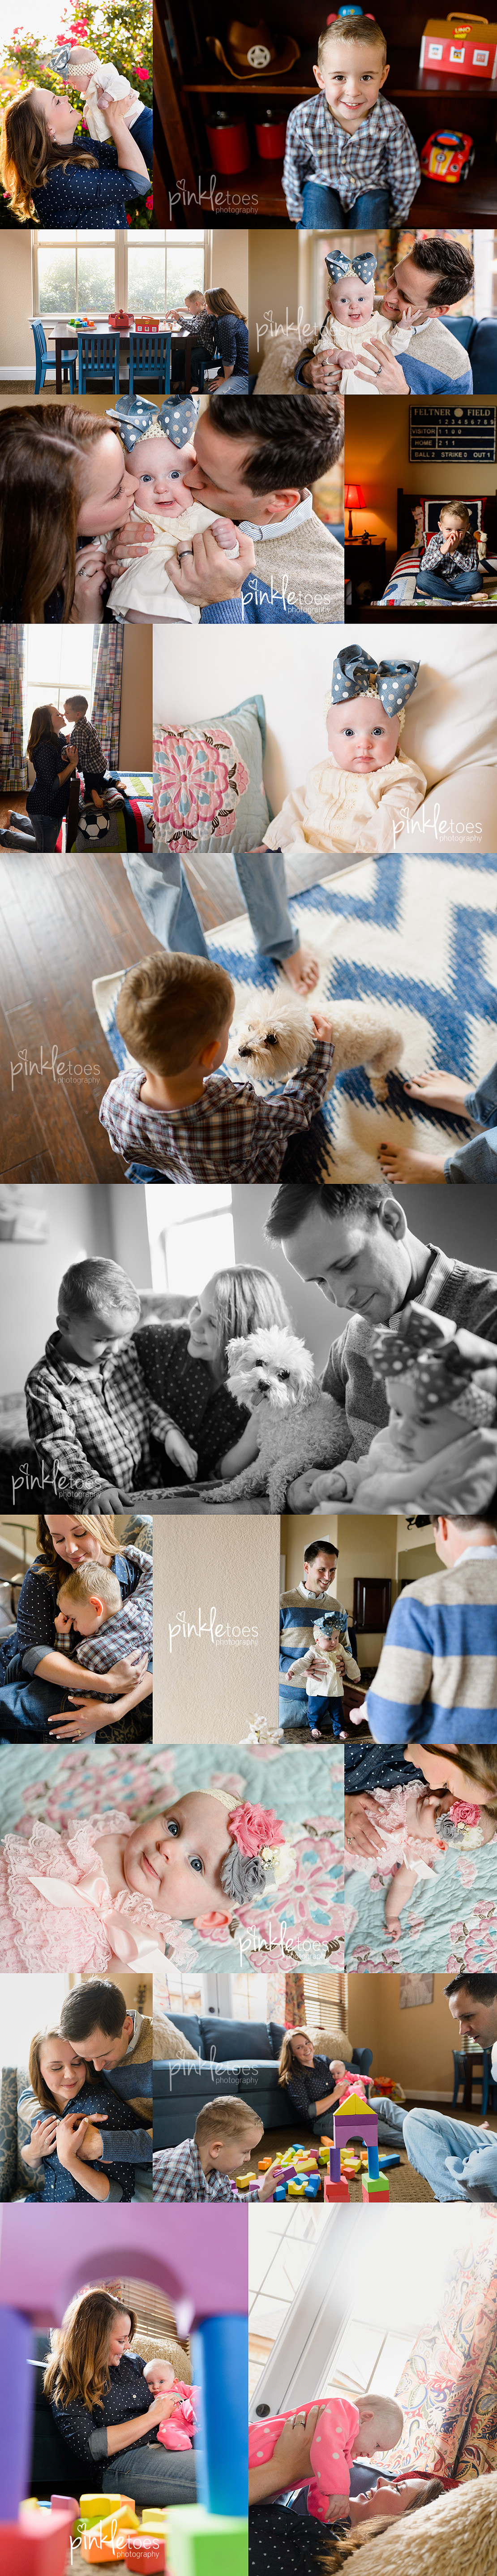 austin-family-lifestyle-photographer-photo-session-baby-child-at-home-blocks